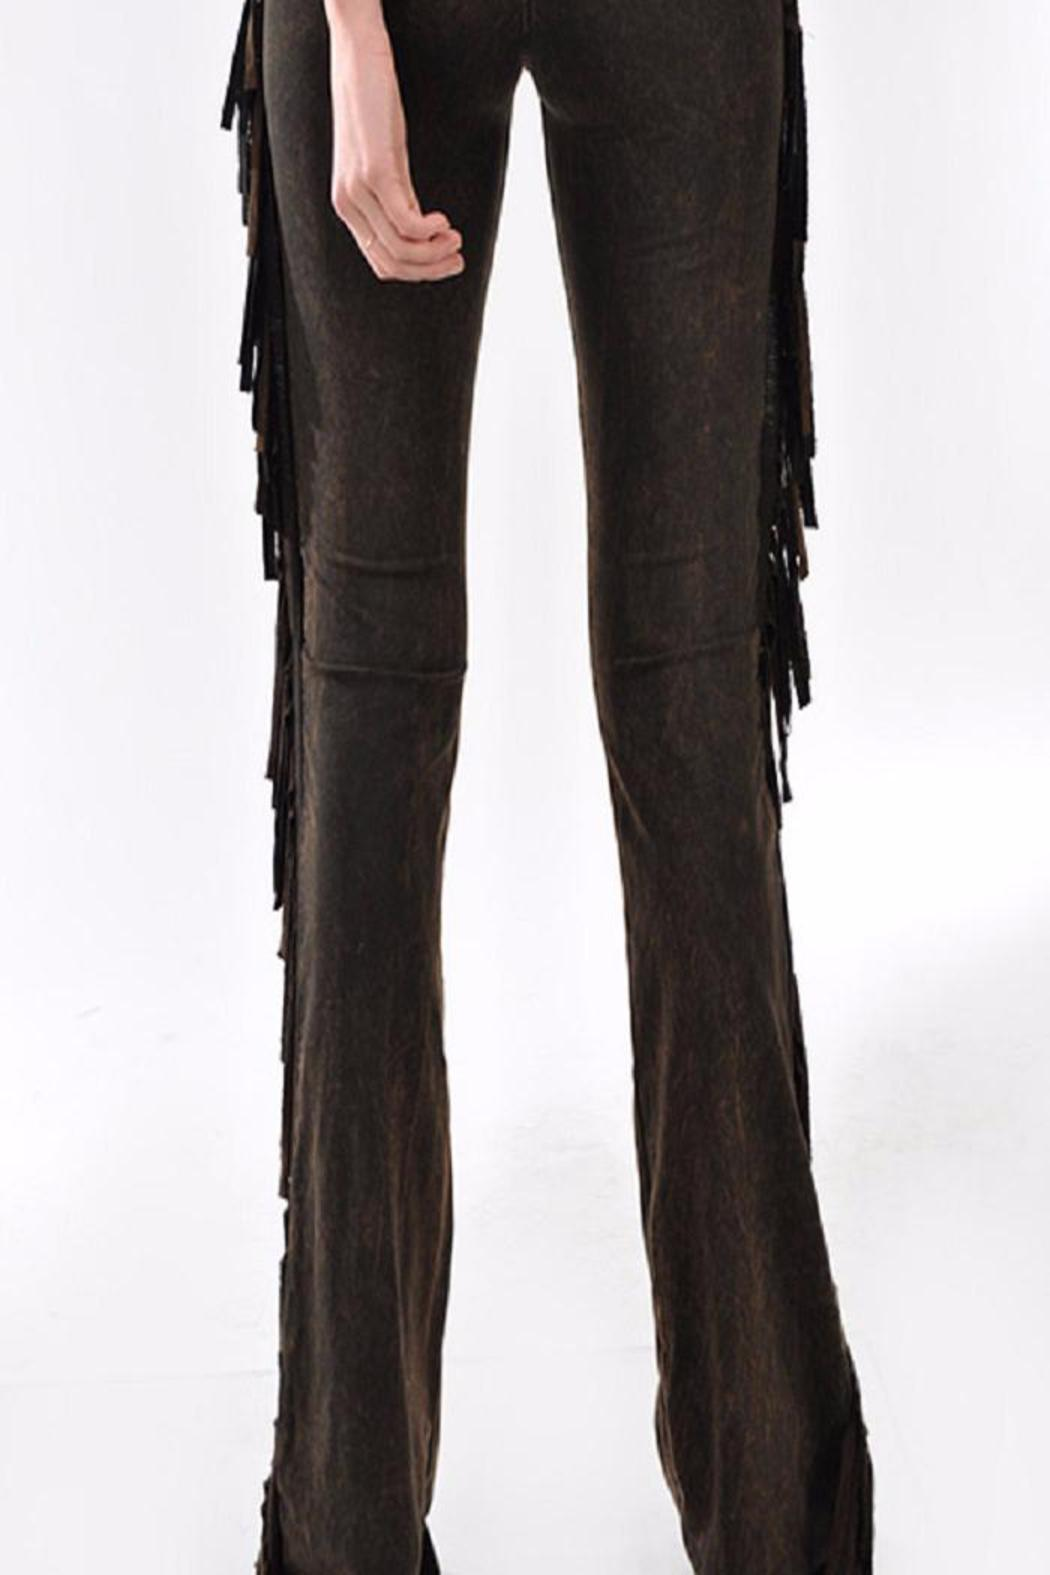 Tparty Fringe Yoga Pants from Wisconsin by The Dilly Bean